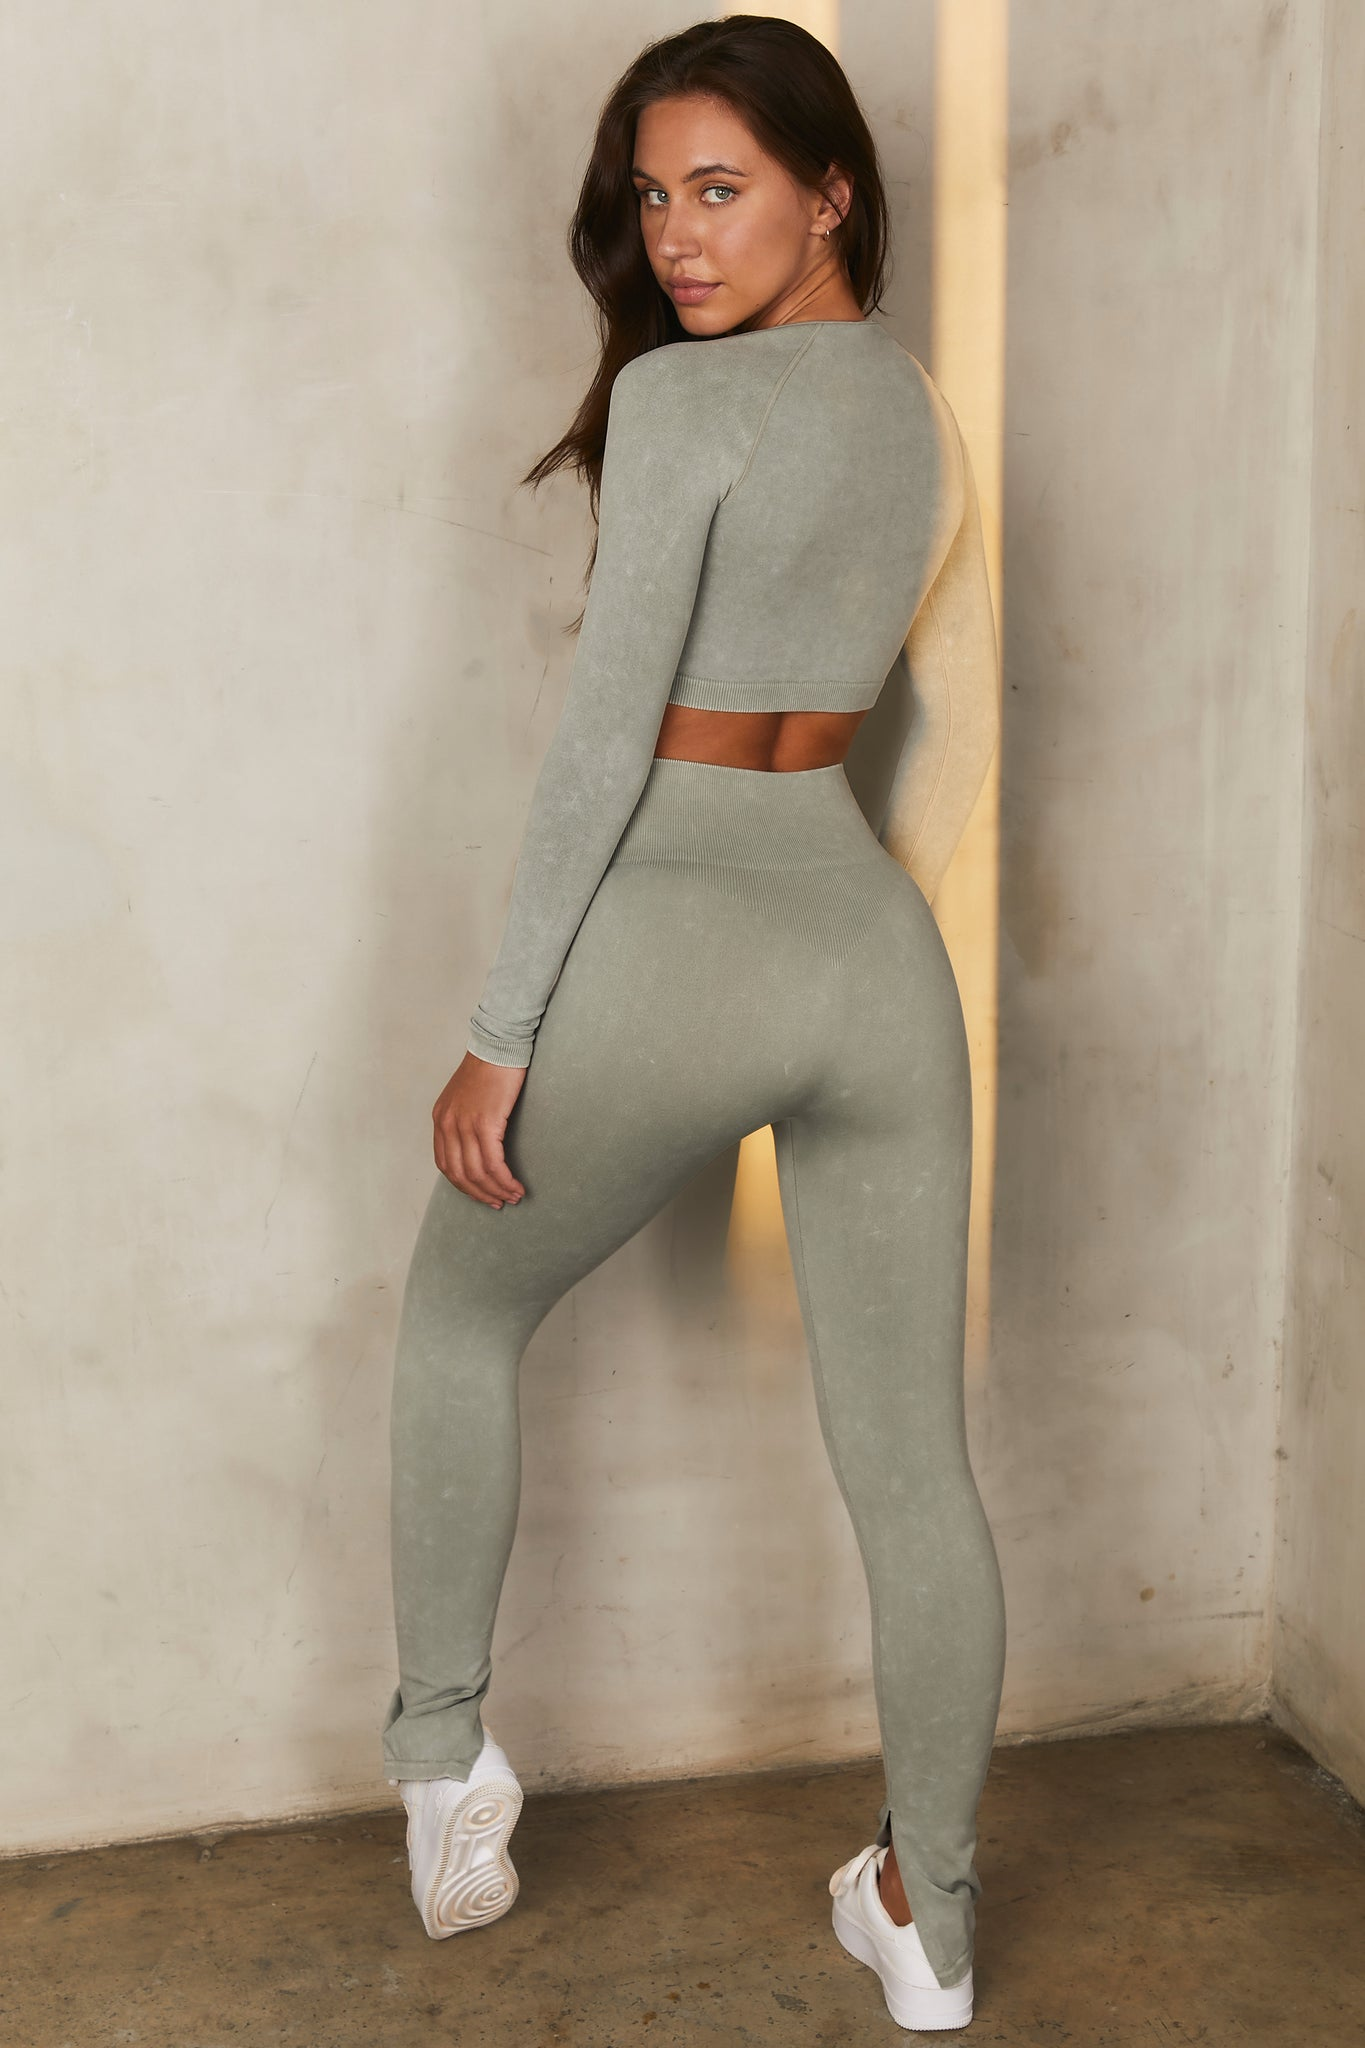 Variation - Leggings in Sage